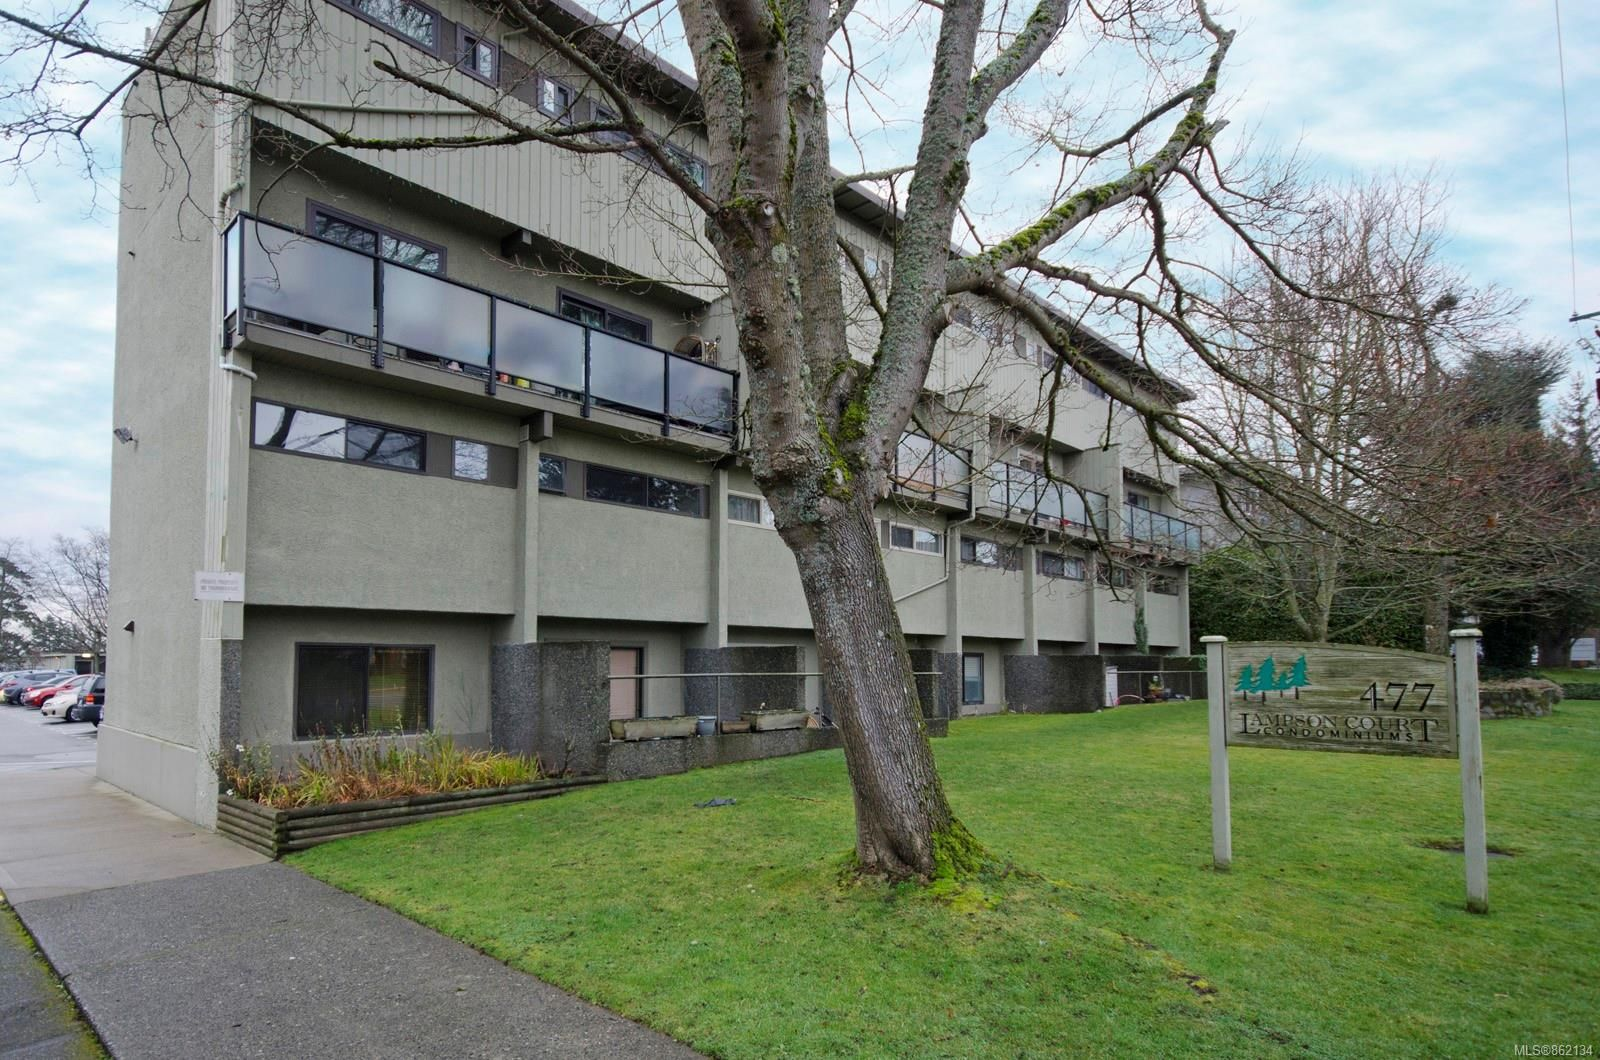 Main Photo: 2 477 Lampson St in : Es Old Esquimalt Condo for sale (Esquimalt)  : MLS®# 862134